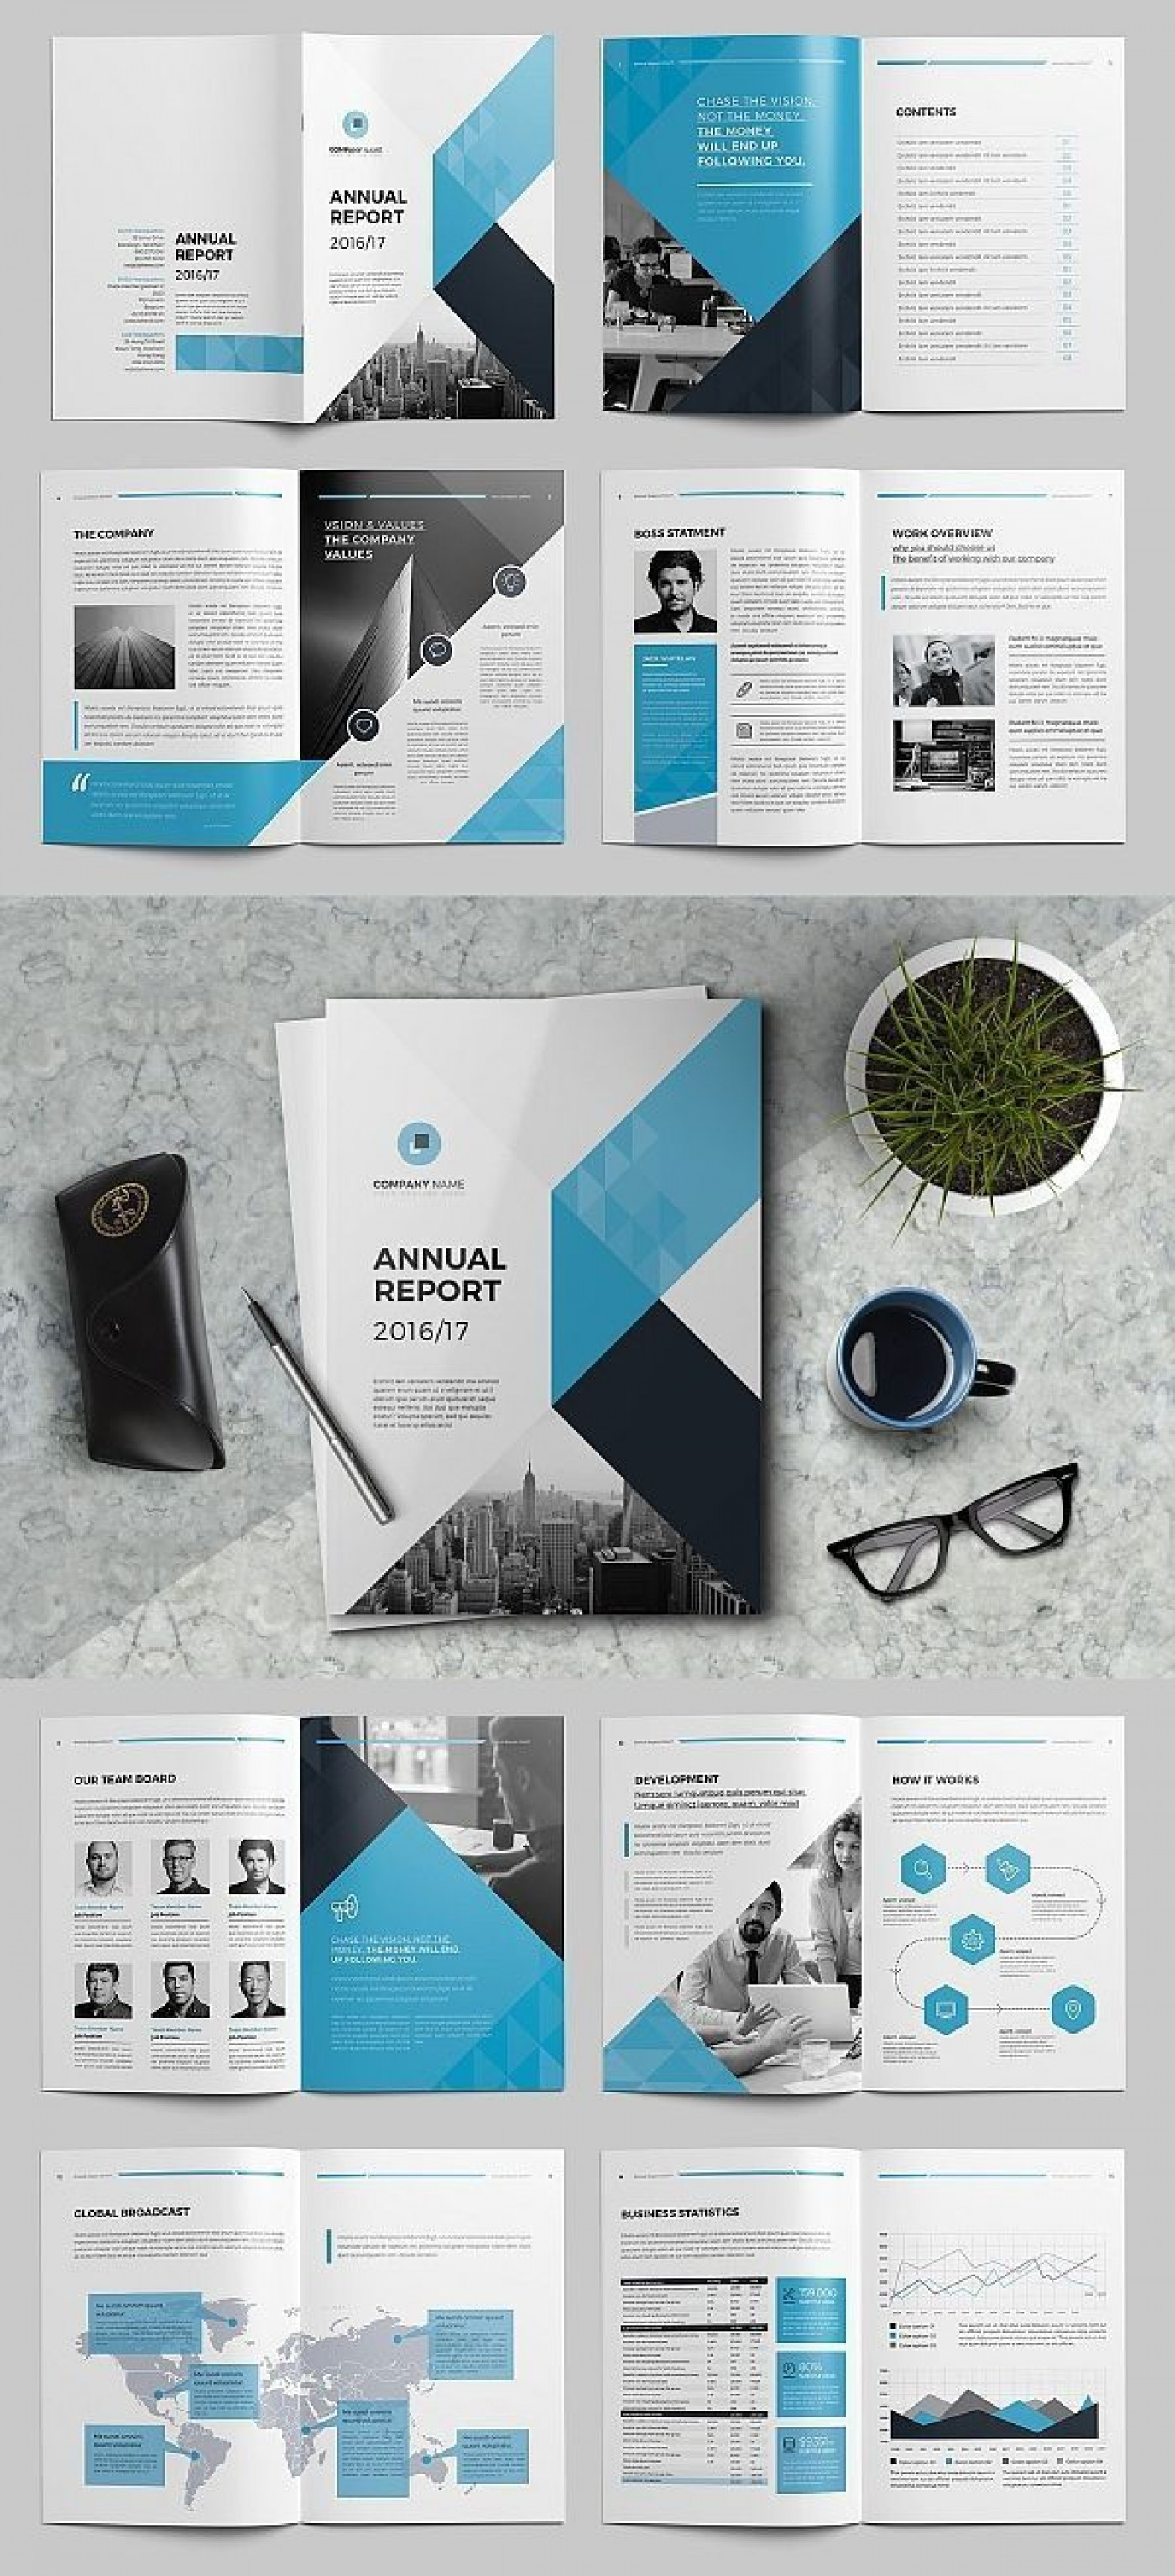 008 Fascinating Annual Report Design Template Indesign Photo  Free Download1400